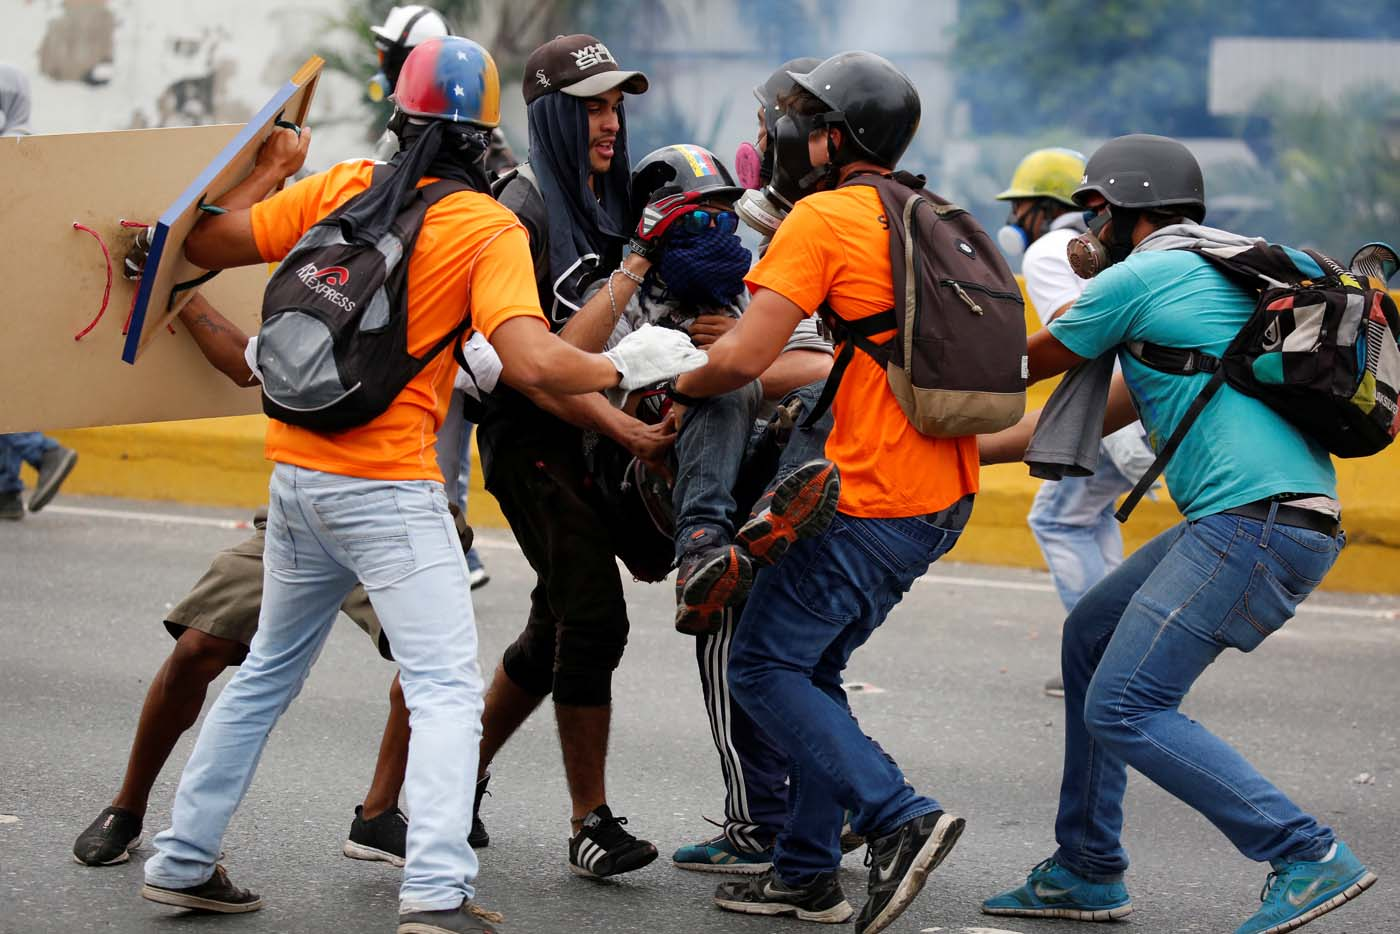 An injured opposition supporter receives help from others during a rally against Venezuelan President Nicolas Maduro in Caracas, Venezuela, May 8, 2017. REUTERS/Carlos Garcia Rawlins